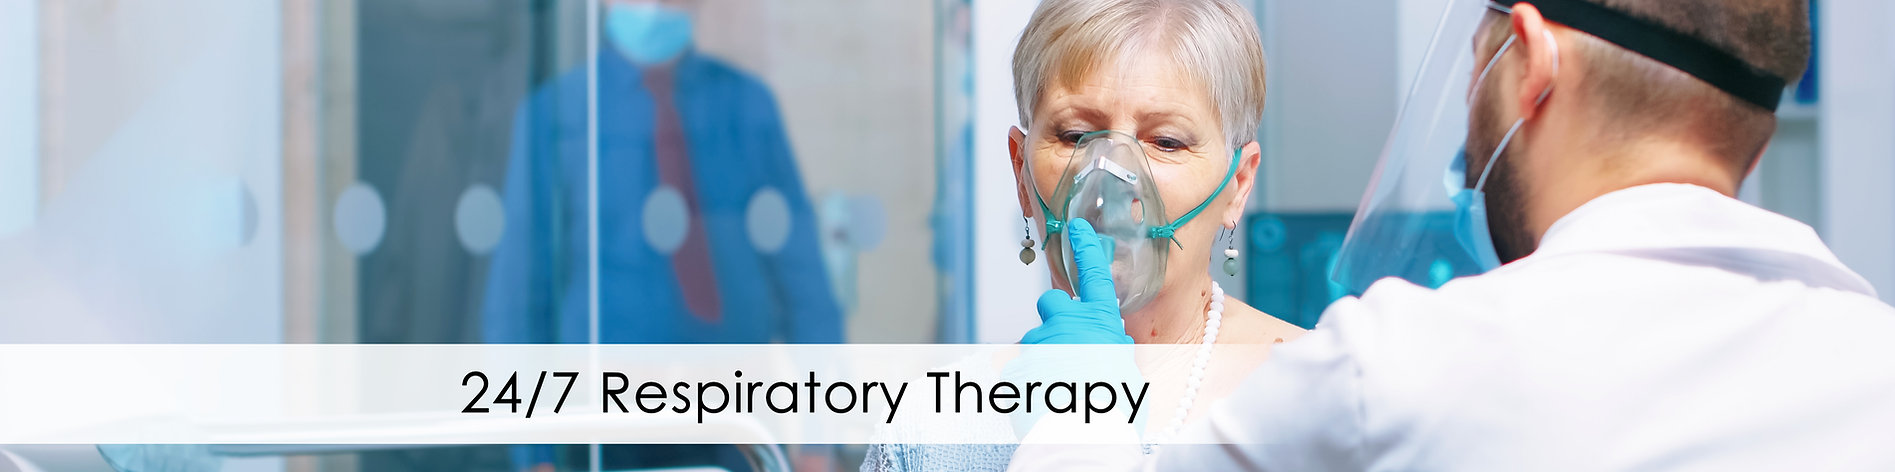 Respiratory Therapy Header Image